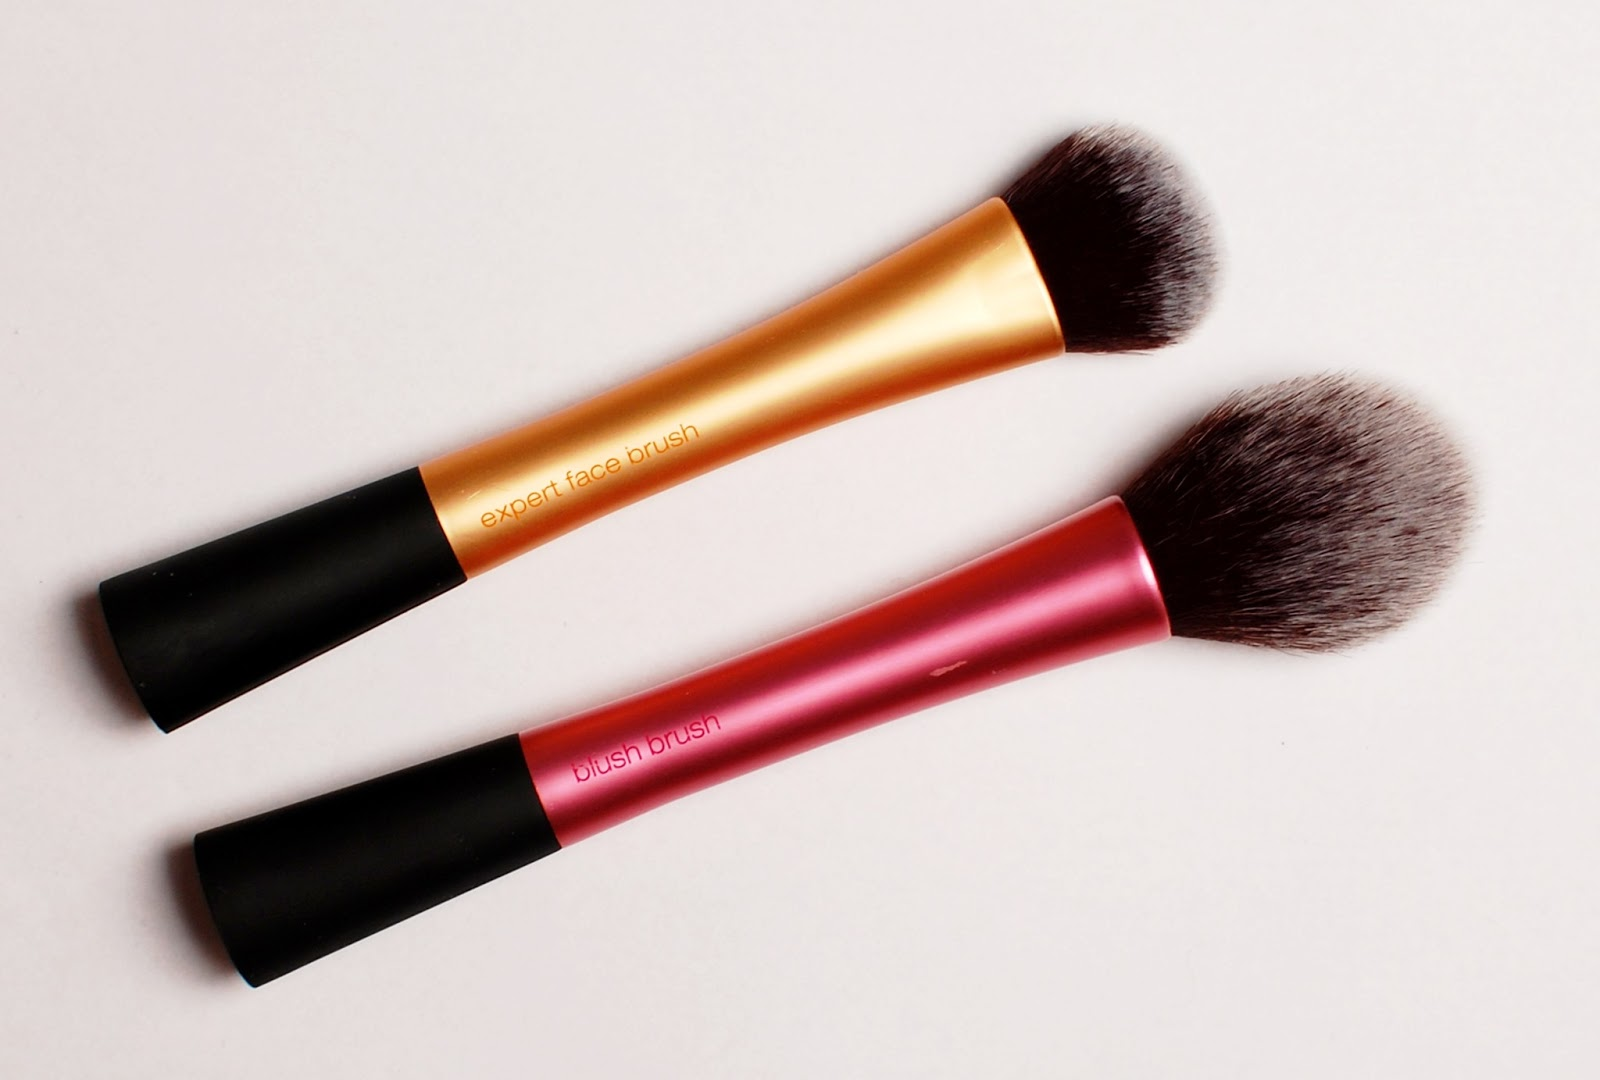 Real Techniques Expert Face Brush, Blush Brush